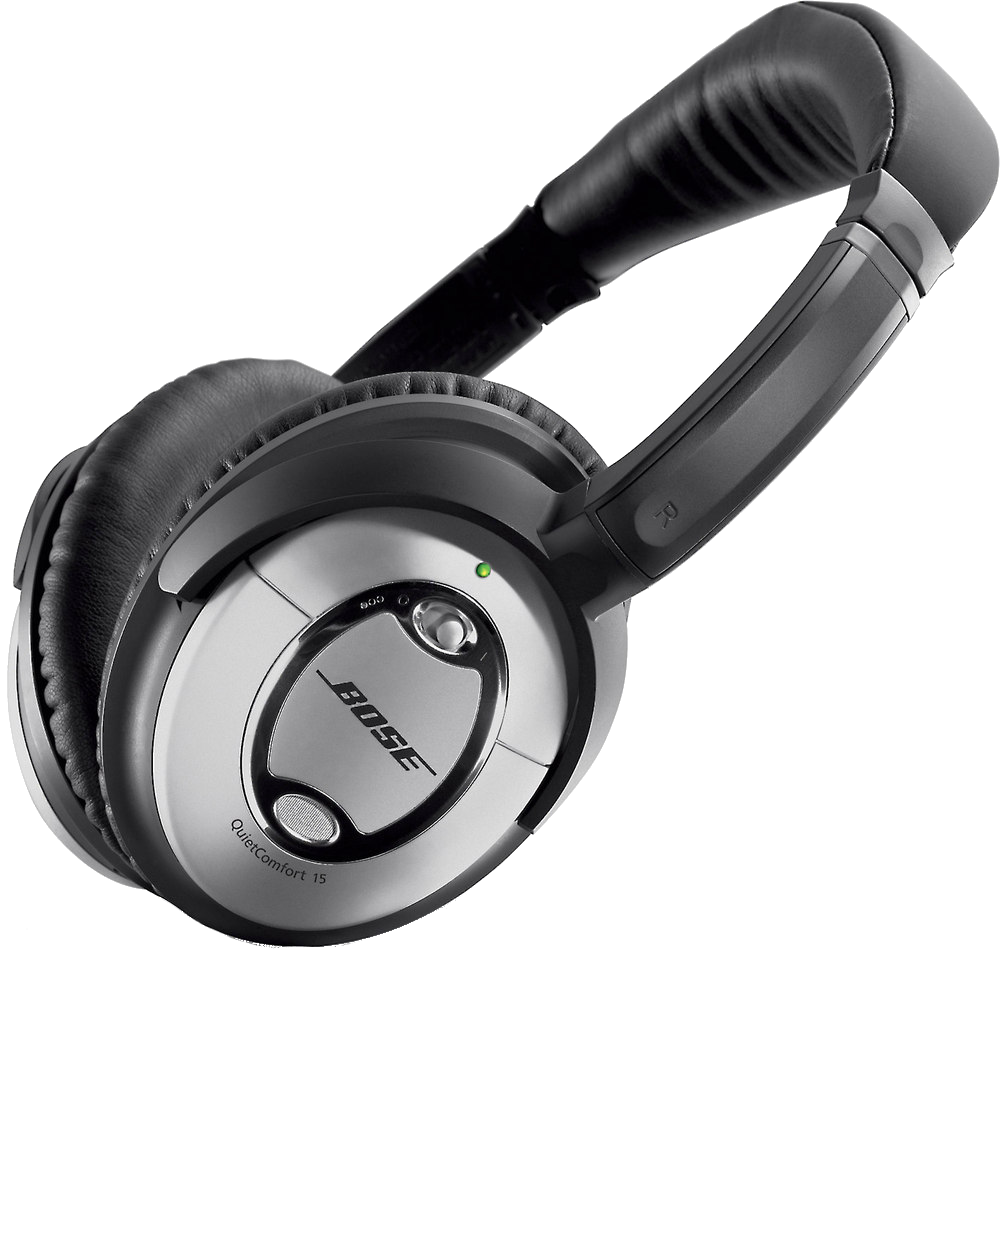 Bose Audio >> Headphones PNG image